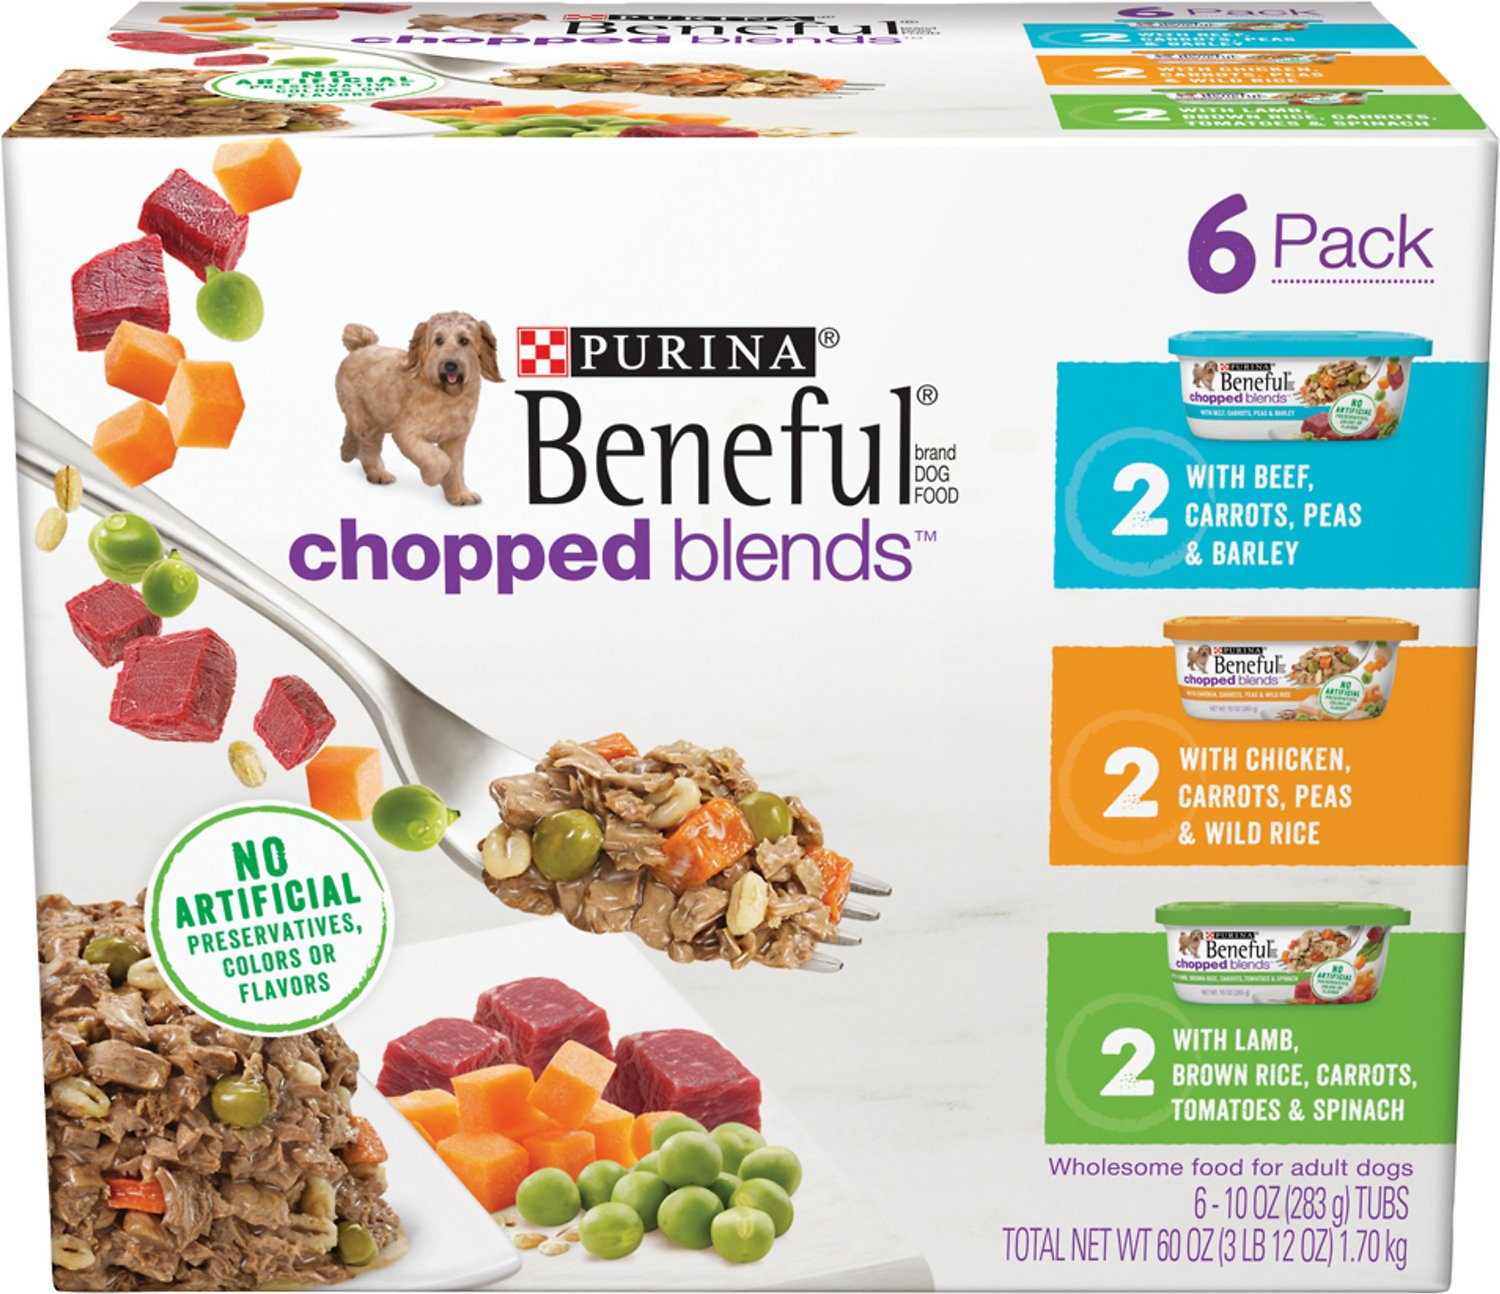 What We Do Know About Beneful Dog Food Recipes Beneful Dog Food